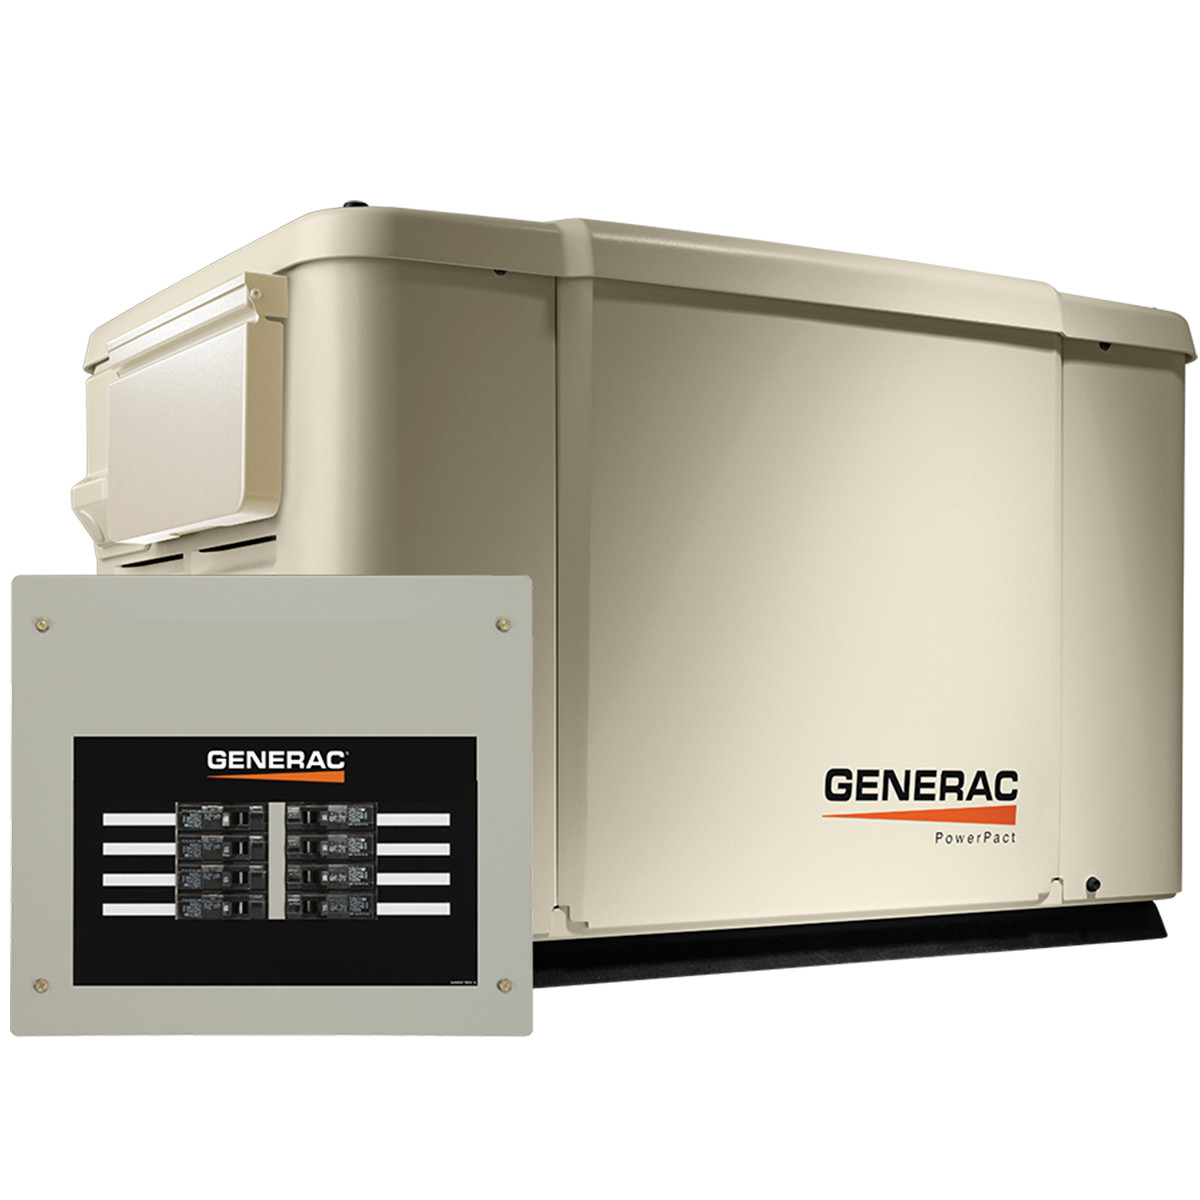 small resolution of generac powerpact 6998 7 5kw generator with wi fi 50a 8 circuit transfer